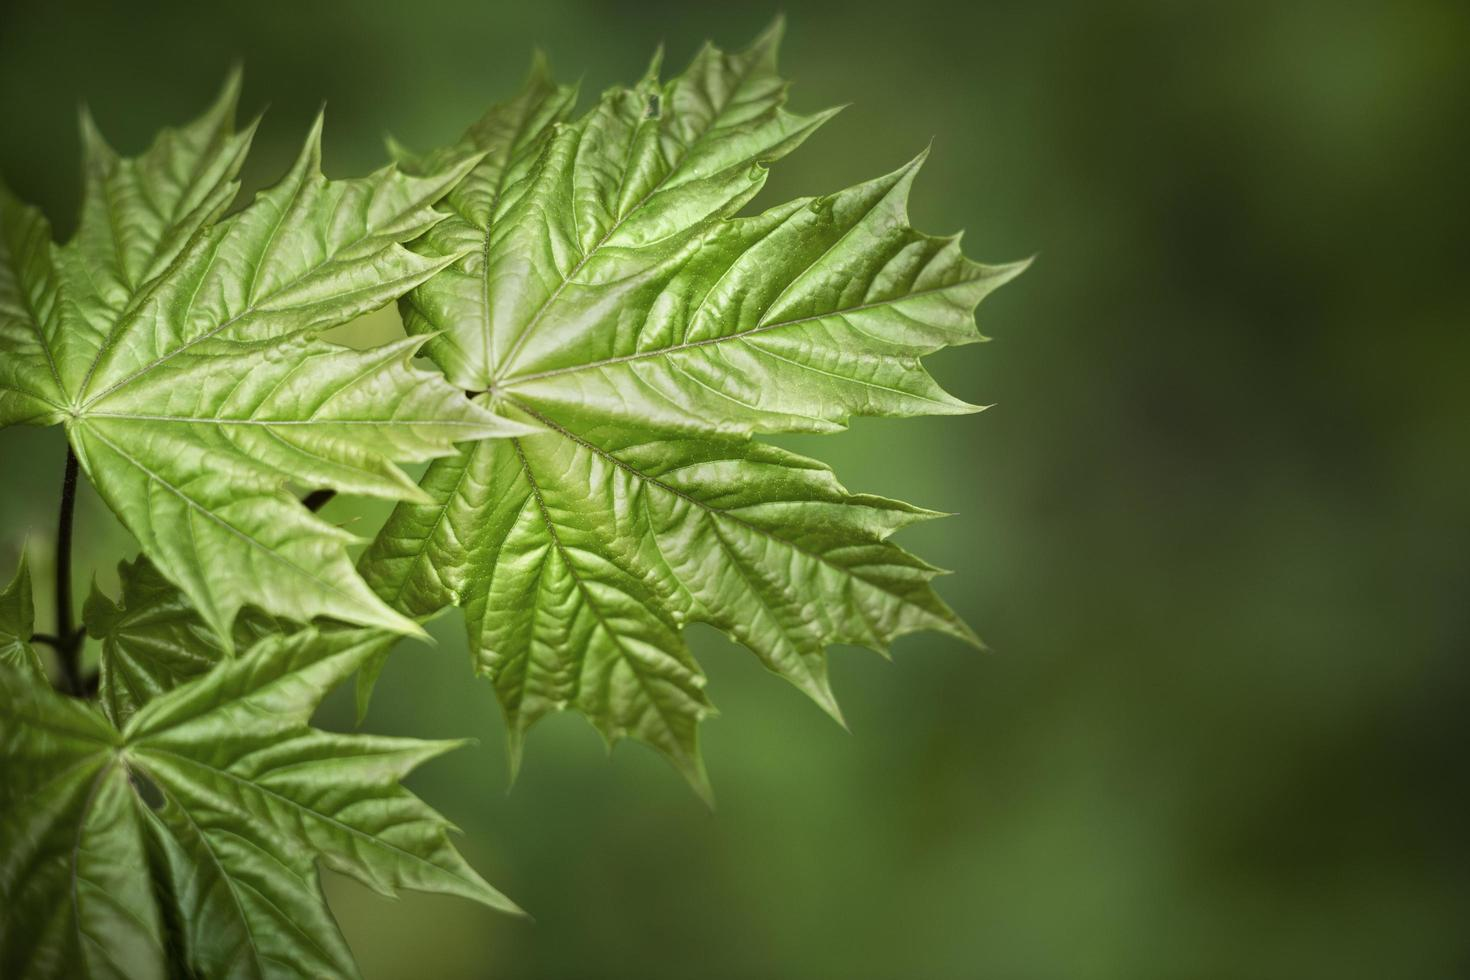 Close up green leaves nature photo